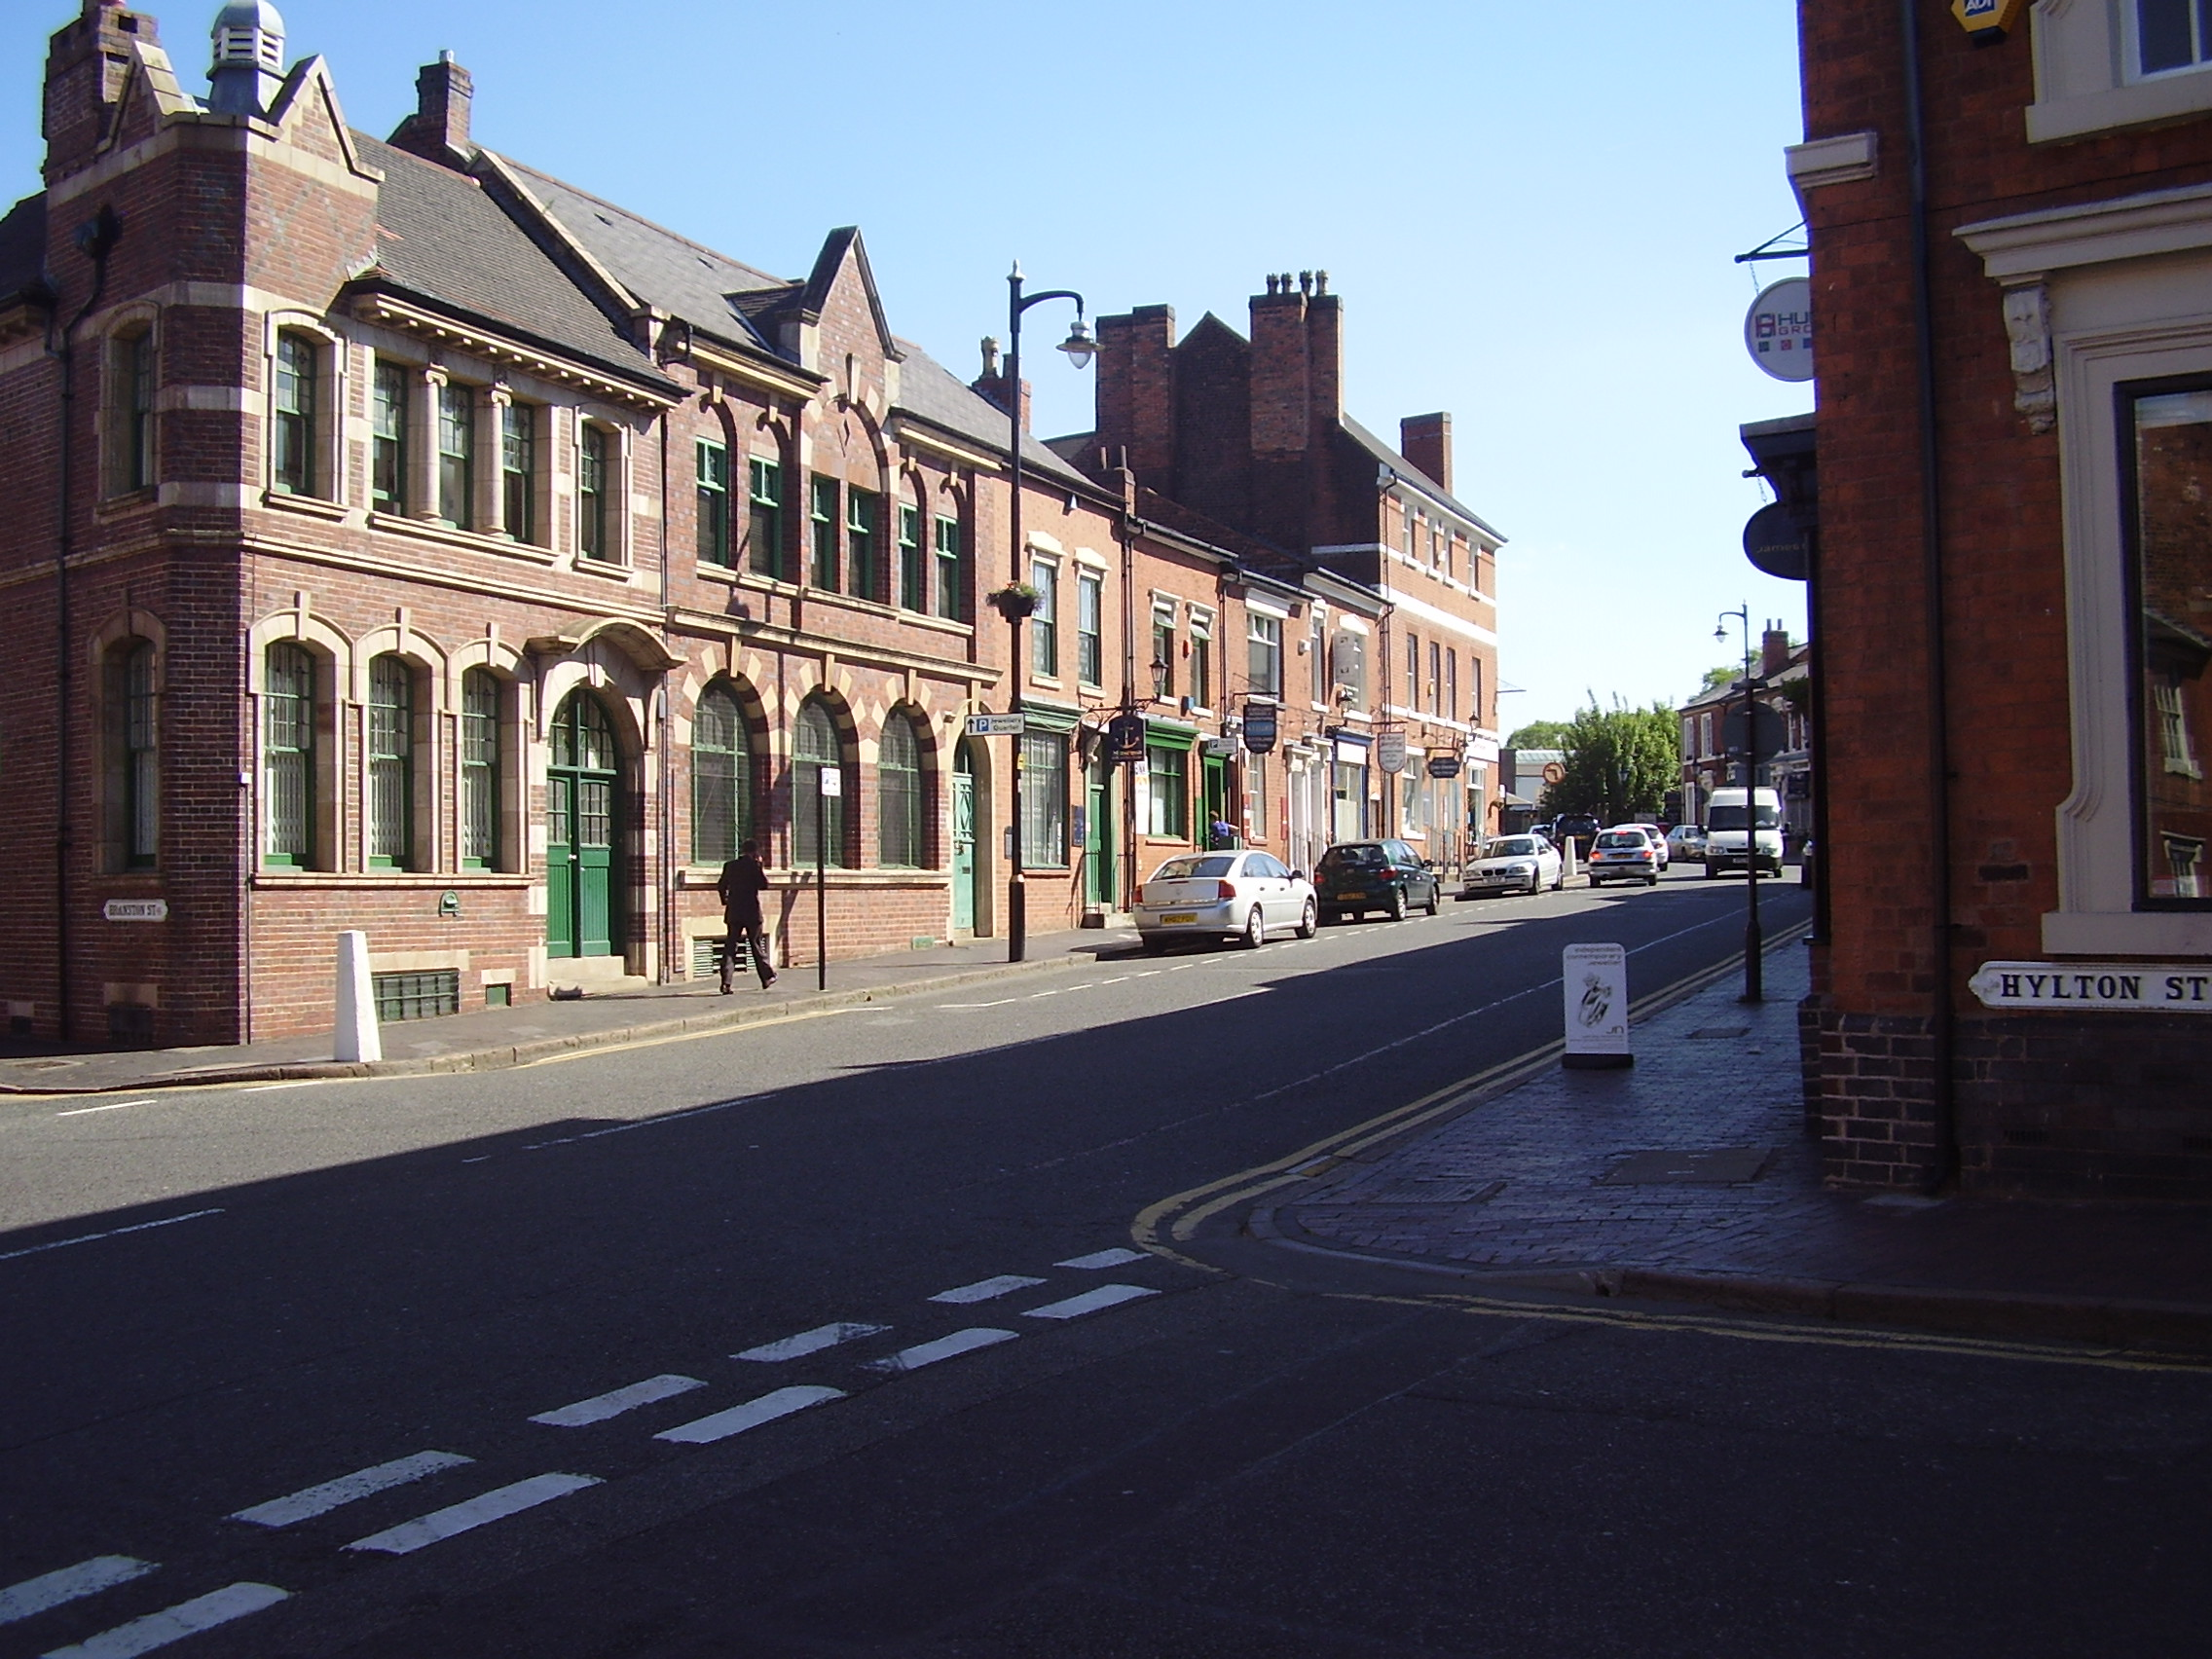 2008 looking up towards the Museum of the Jewellery Quarter 75-80 Vyse St, Birmingham B18 6HA, UK